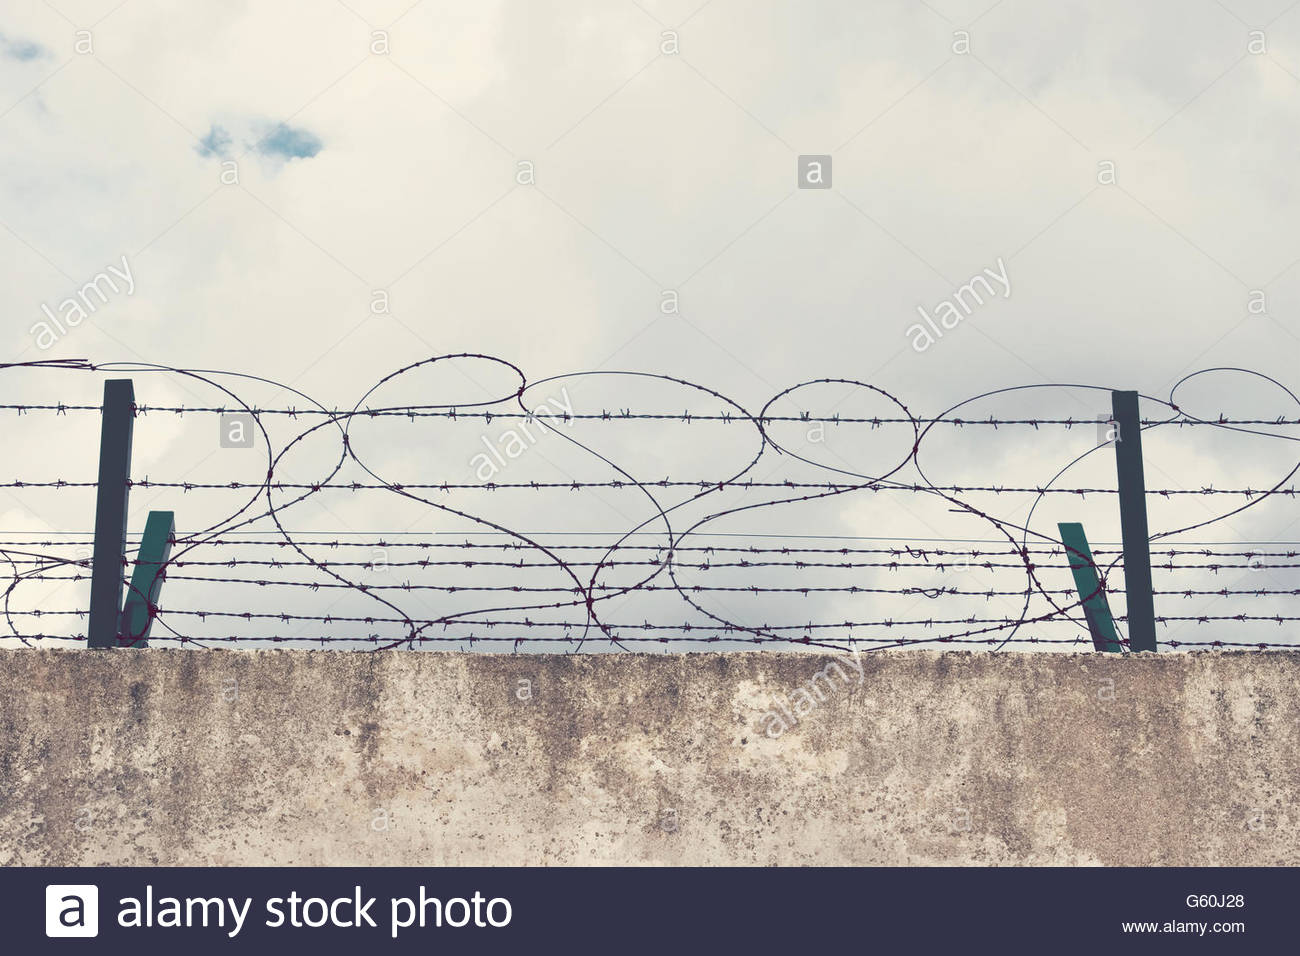 Barbed Wire On The Berlin Wall Stock Photos & Barbed Wire On The ...